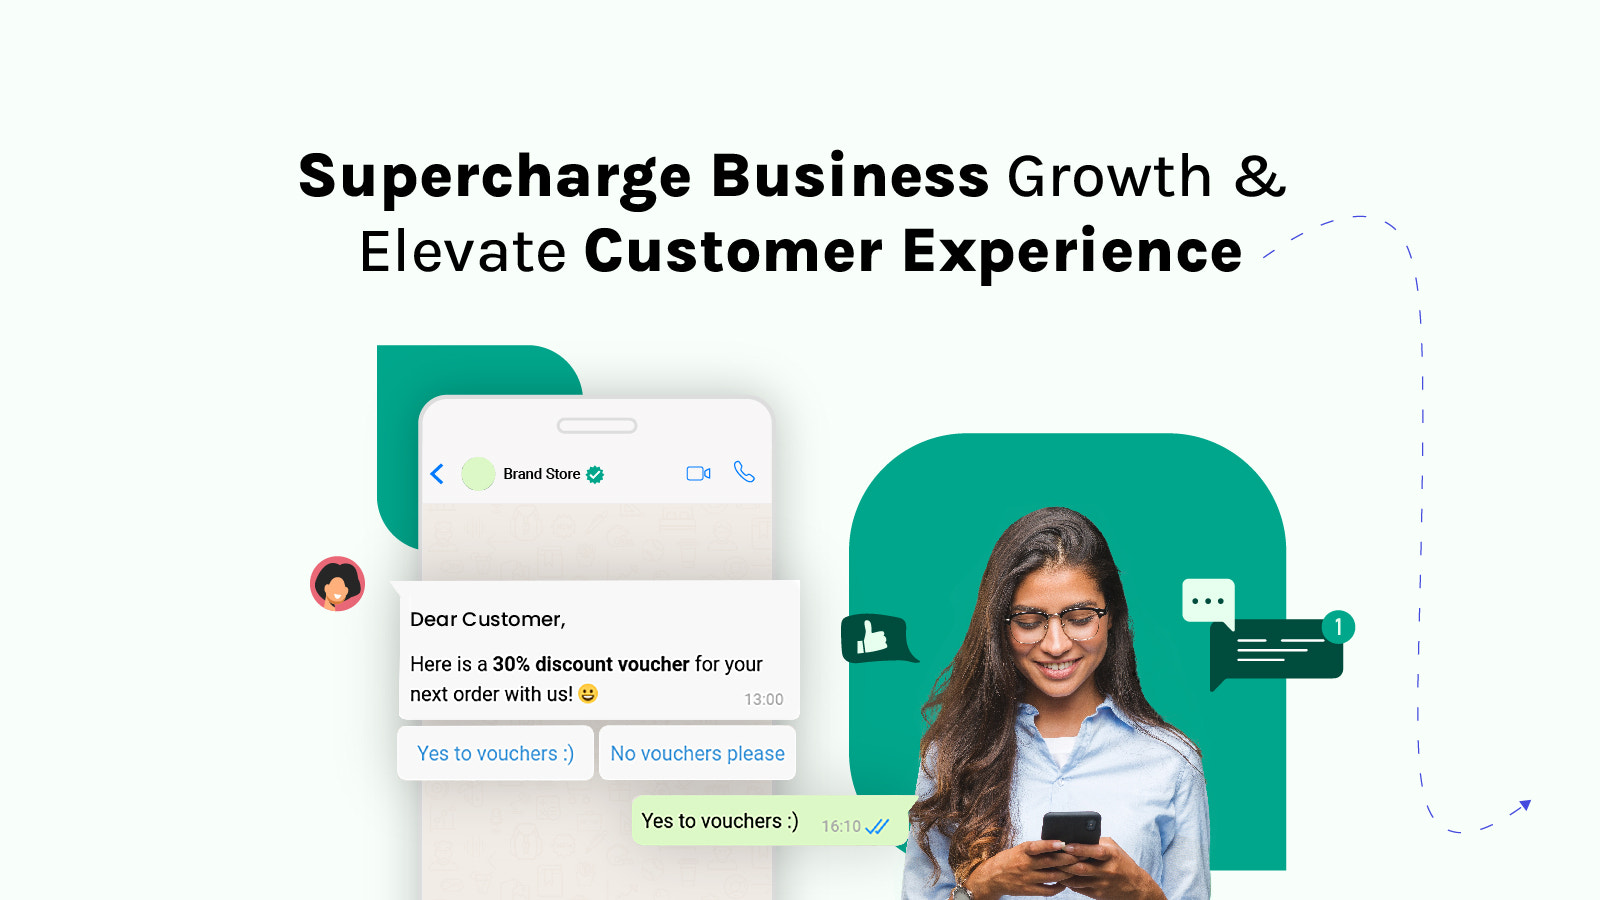 Supercharge Business Growth & Elevate Customer Experience